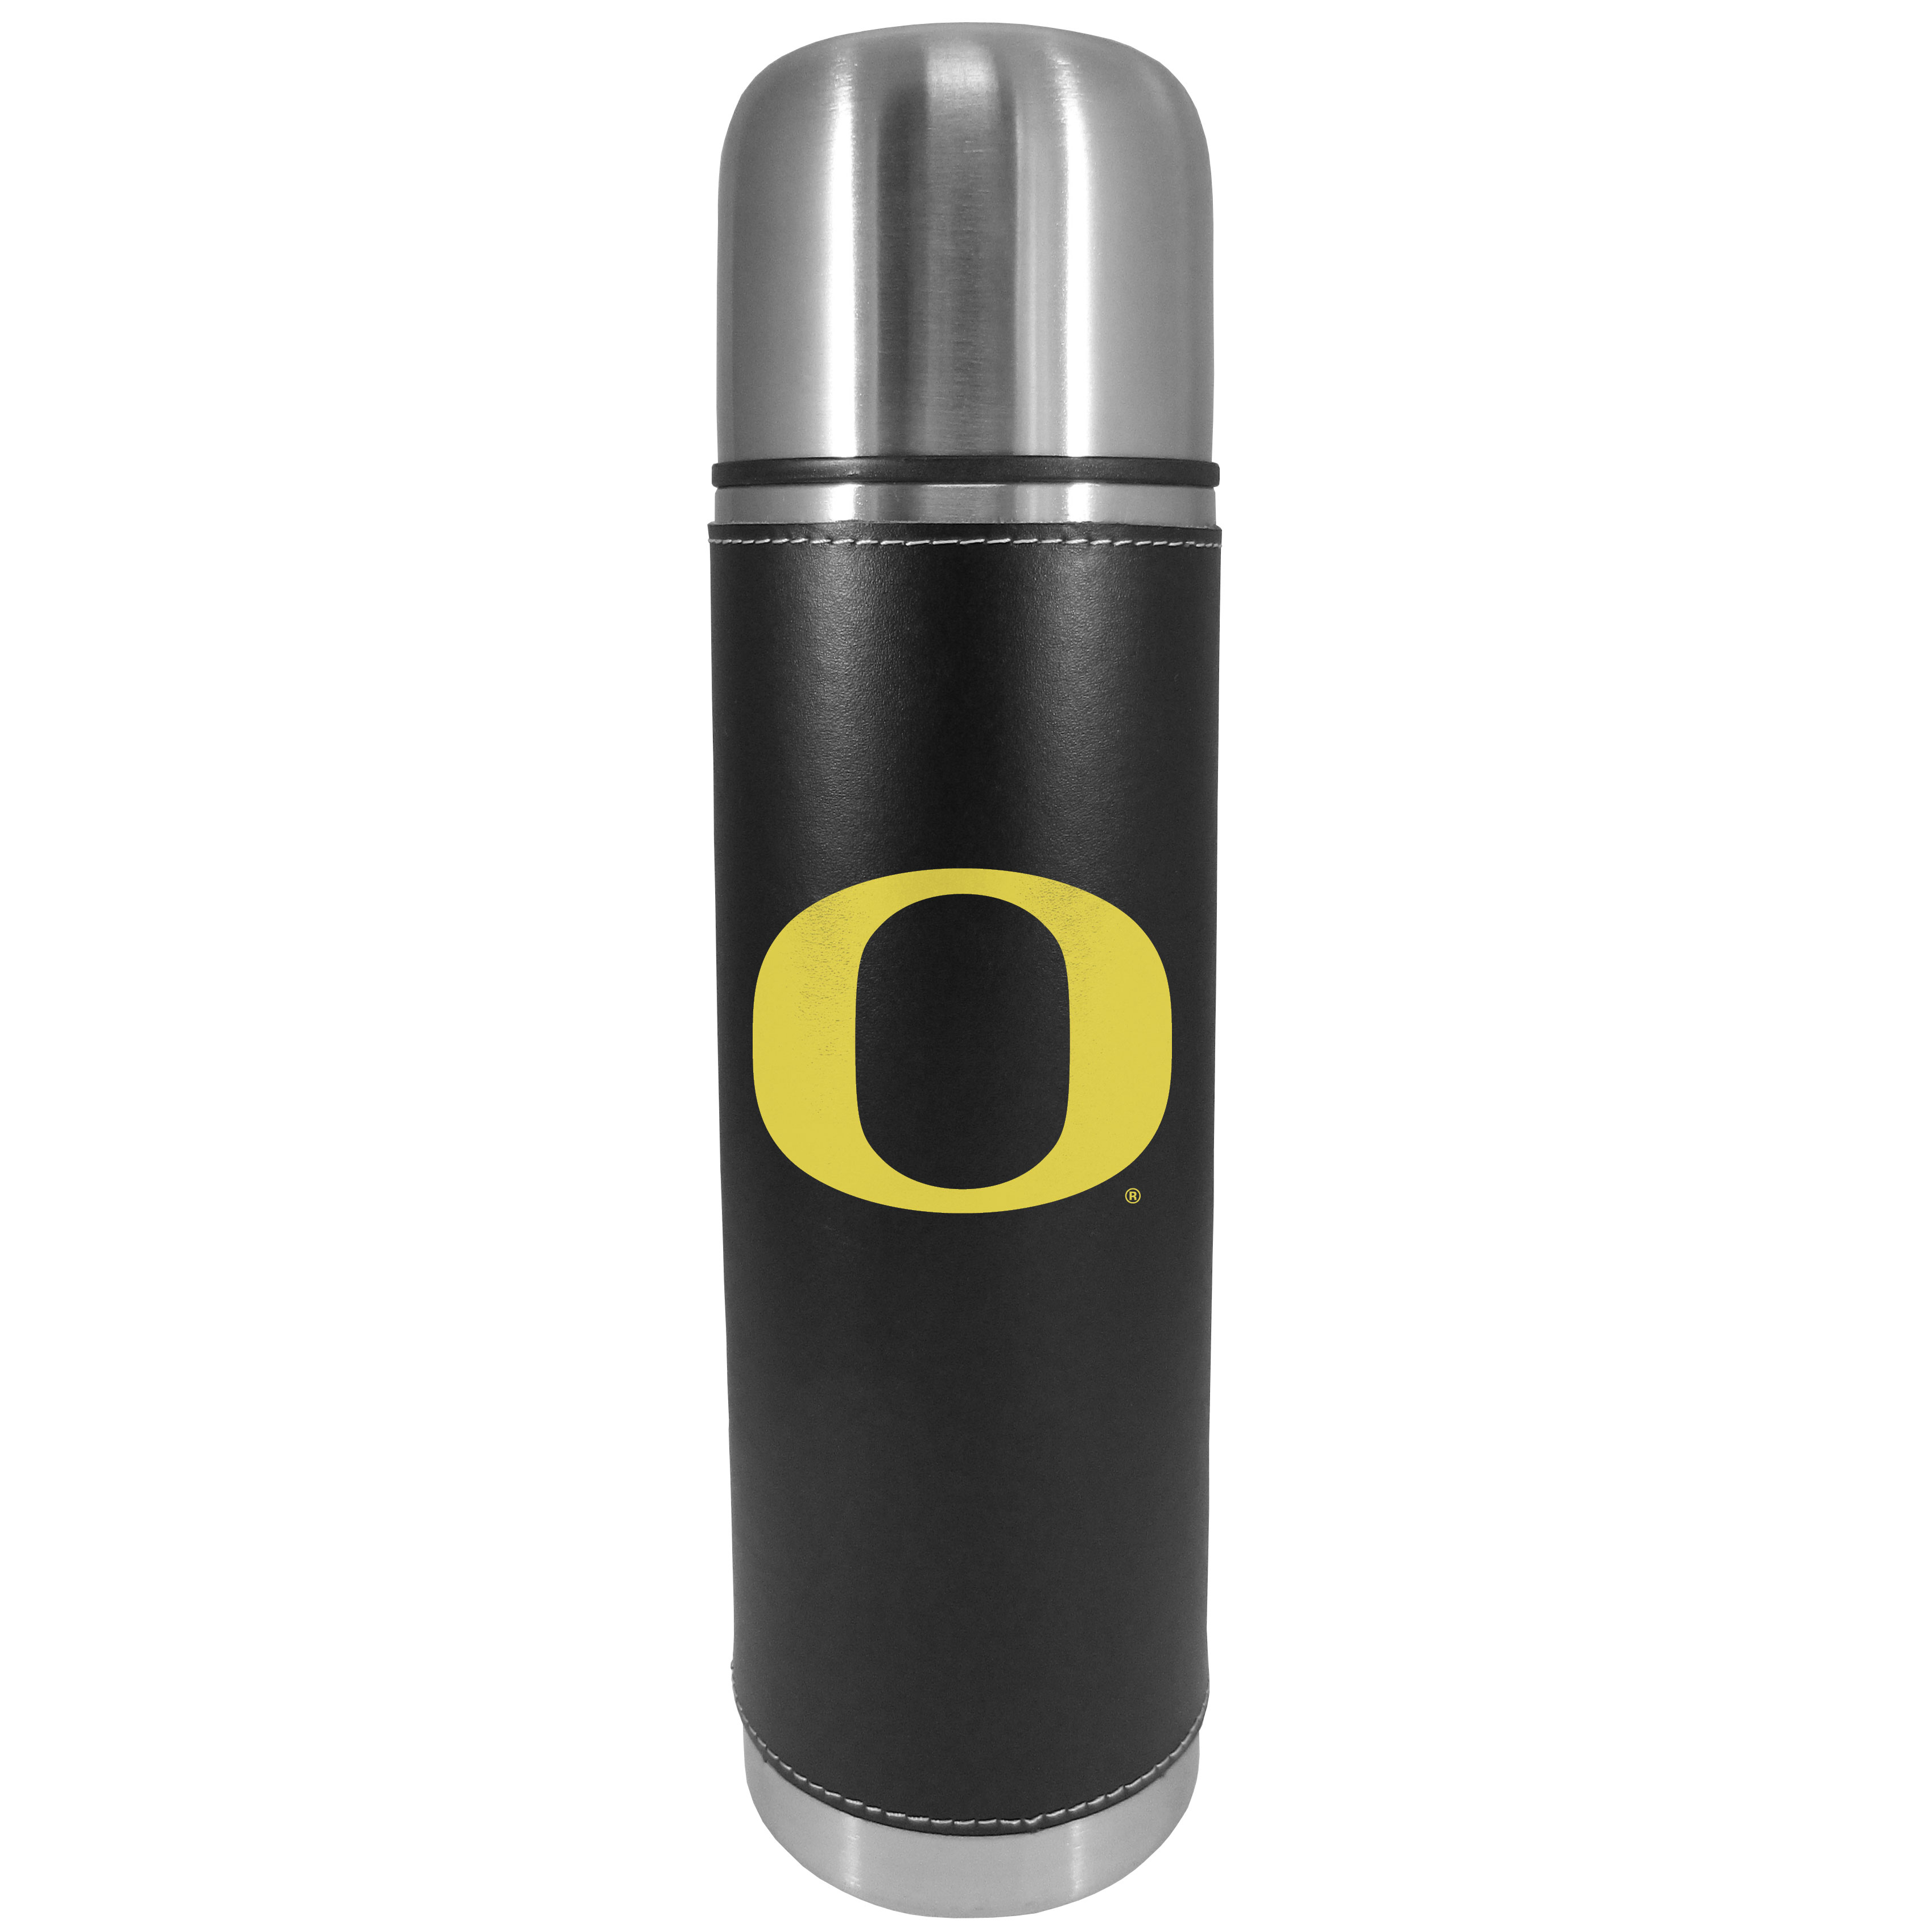 Oregon Ducks Graphics Thermos - This attractive, 26 ounce Oregon Ducks thermos is a great way to keep your beverages hot while on the go. The 11 inch tall, vacuum sealed thermos features a black vinyl wrap with stitched details and a digitally printed team logo. The lid screws on and can be used as a cup.